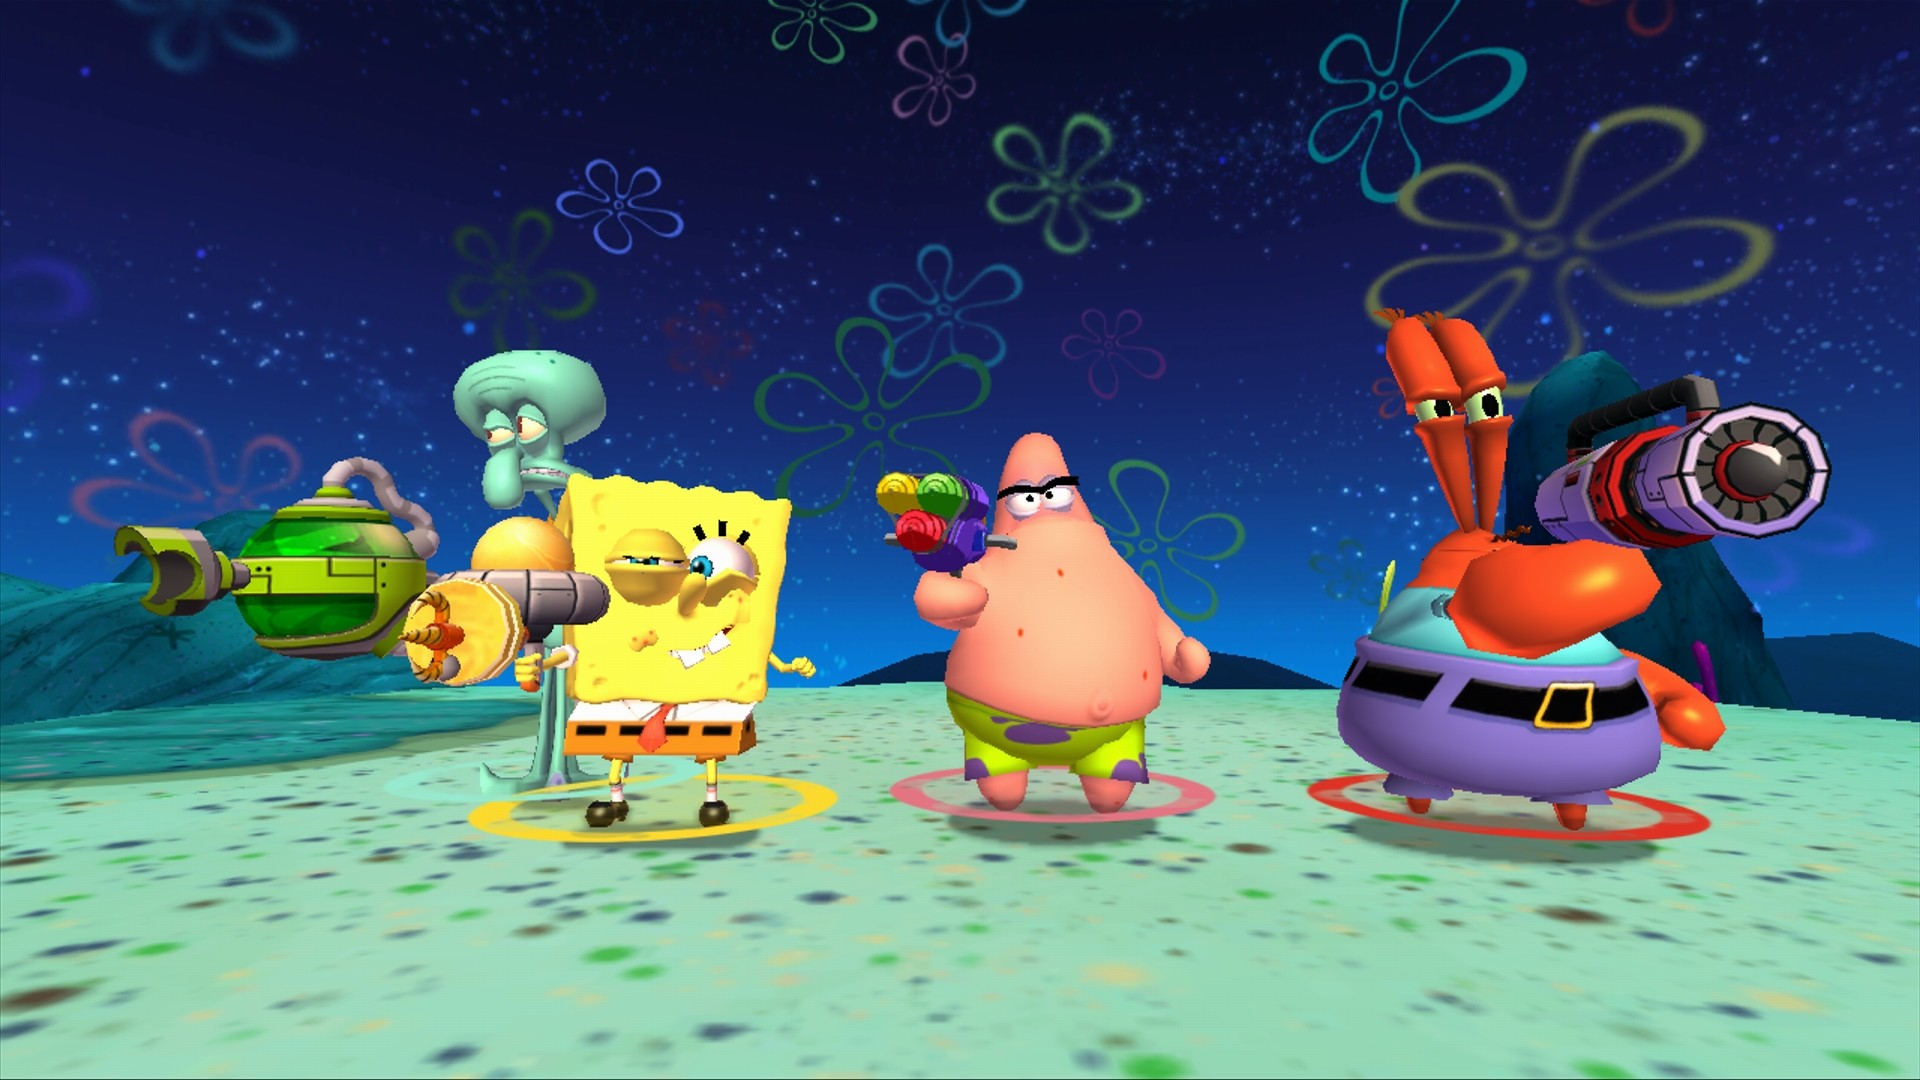 1920x1080 spongebob background hd free | Desktop Backgrounds for Free HD .